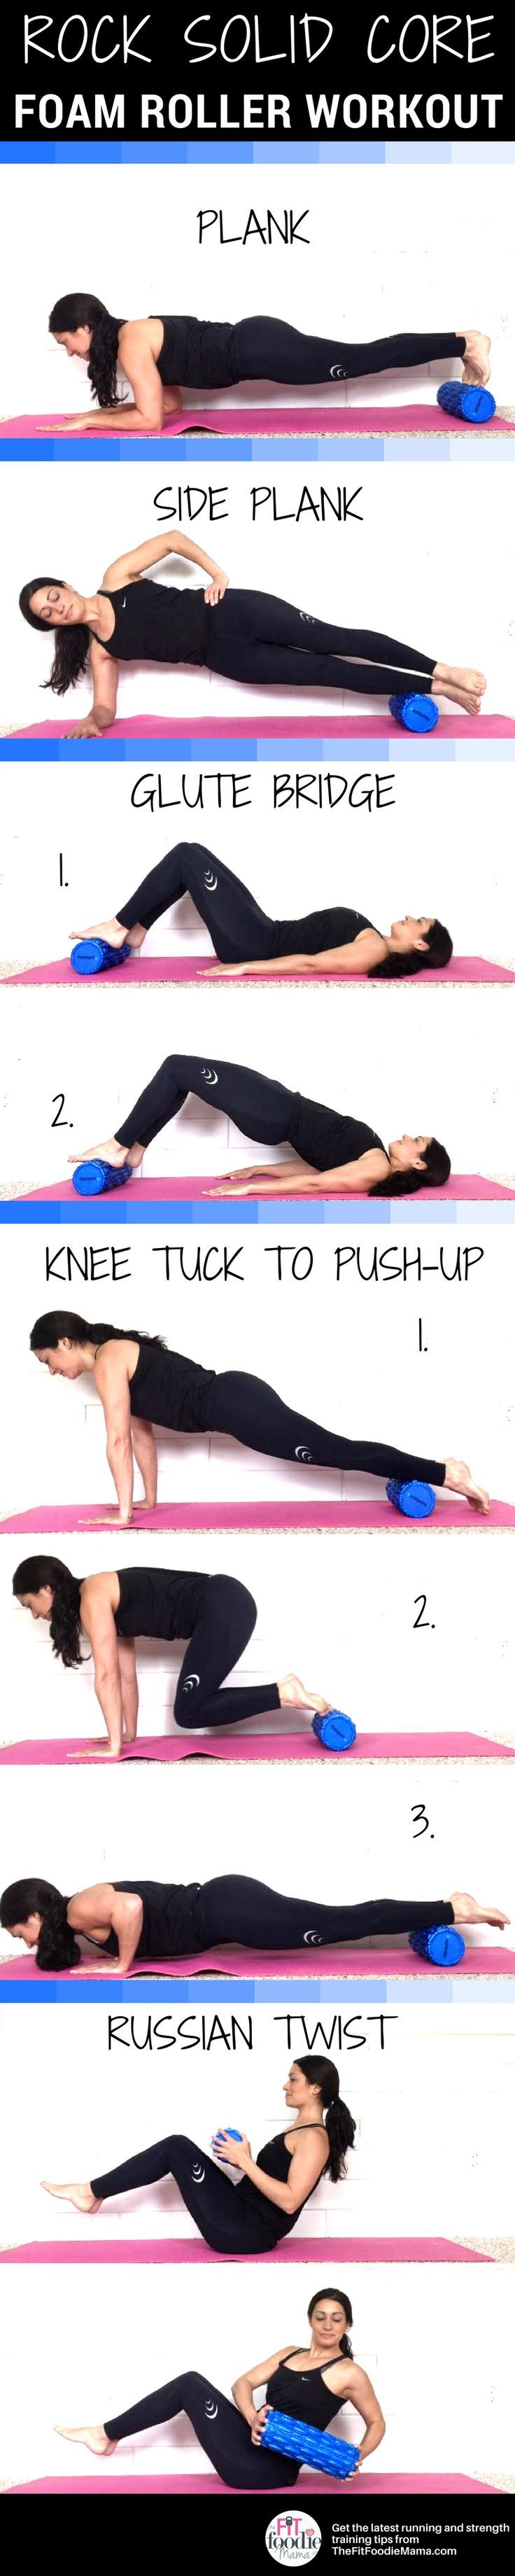 beginners plank exercise instructions